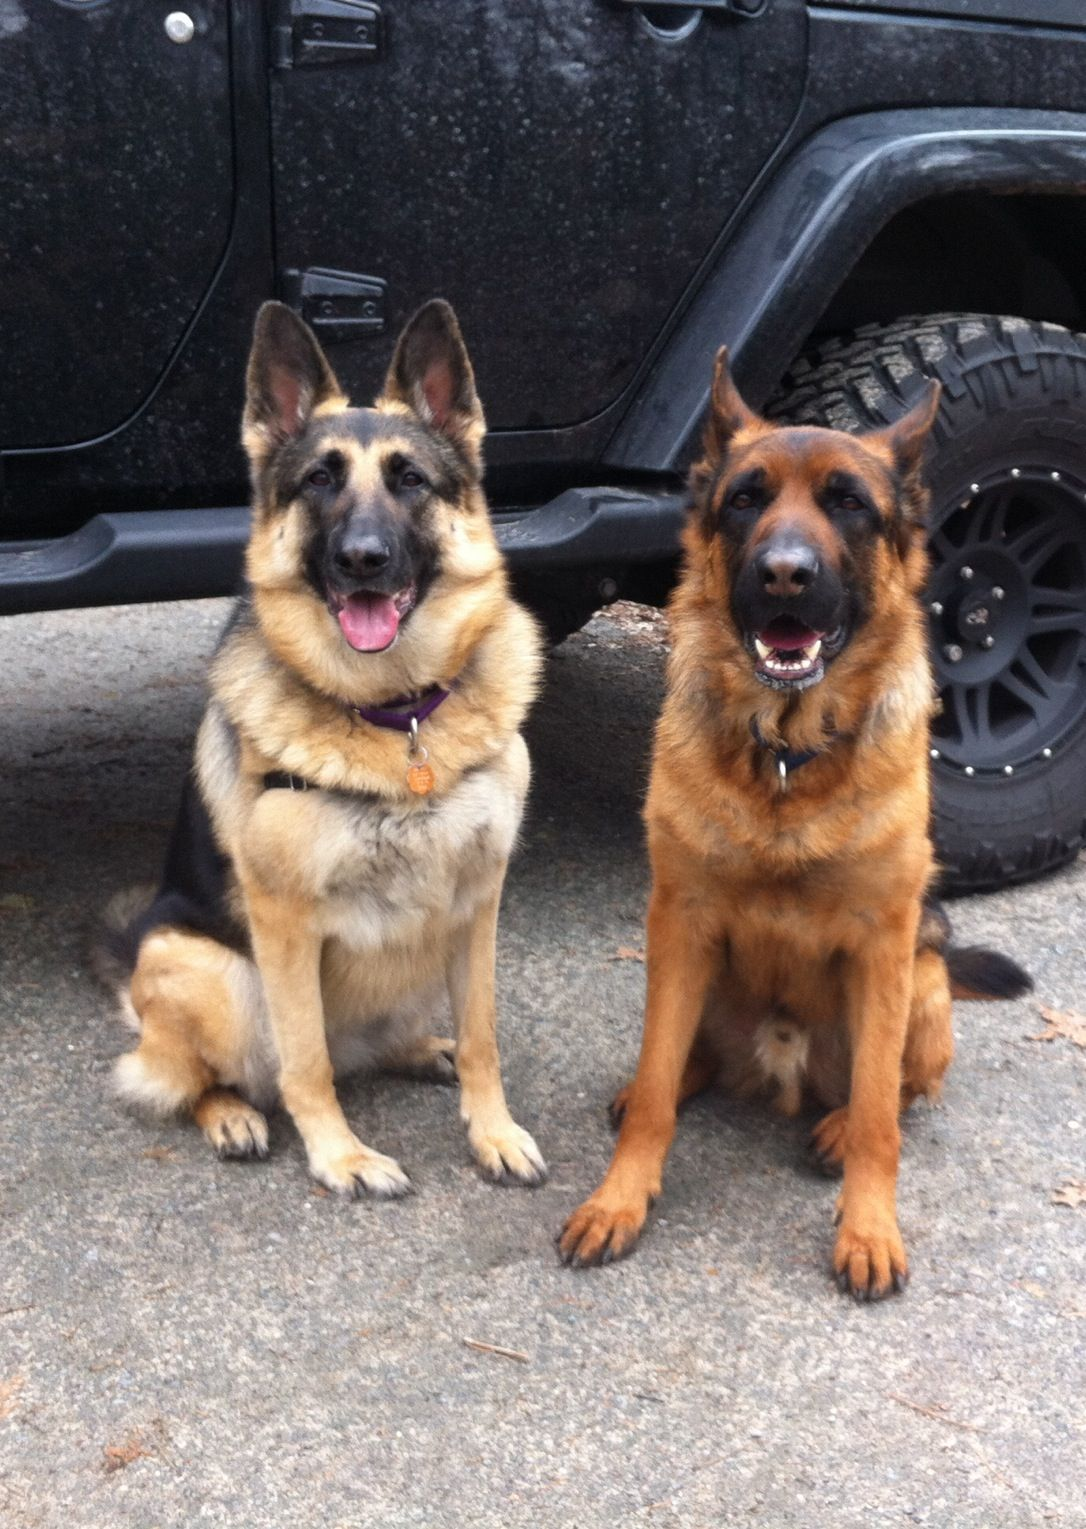 Black And Tan Gsd Kaylee And Black And Red Gsd Ozzie Two Happy German Shepherd Dogs German Shepherd Dogs Shepherd Dog Dogs